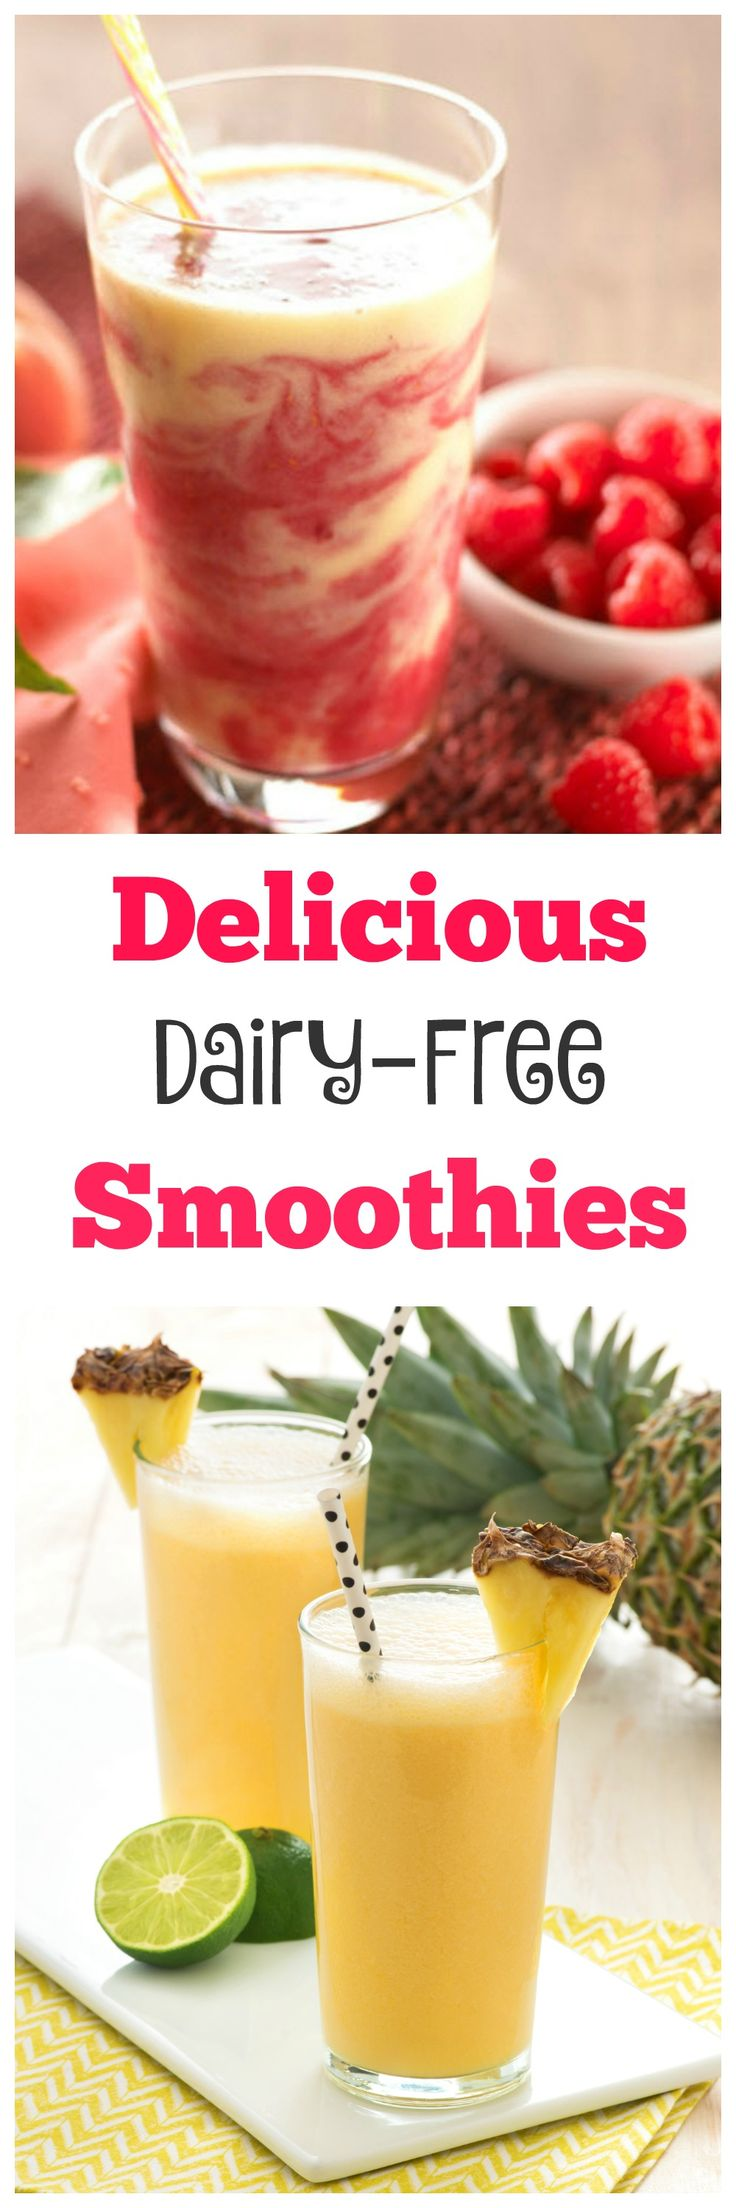 Delicious Dairy Free Smoothies - these dairy free delights are refreshing, full of flavour and are made with Almond Breeze. A great addition to your family's breakfast or after school snacks.